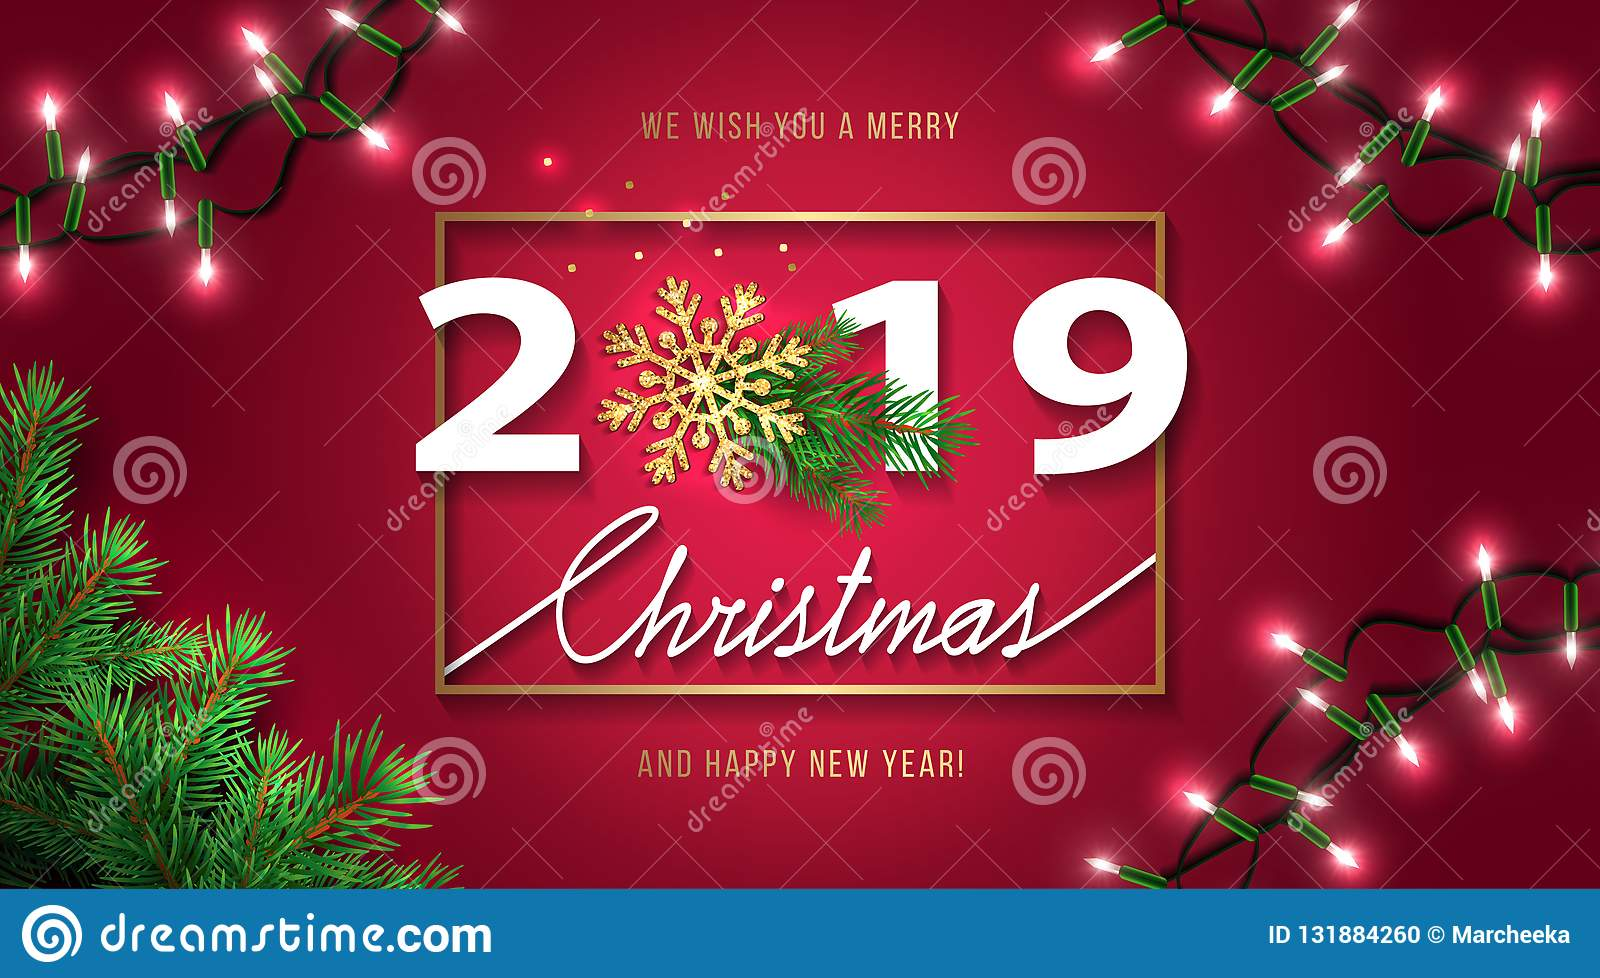 Christmas Season 2019 Merry Christmas And Happy New Year 2019 Greeting Card. Christmas